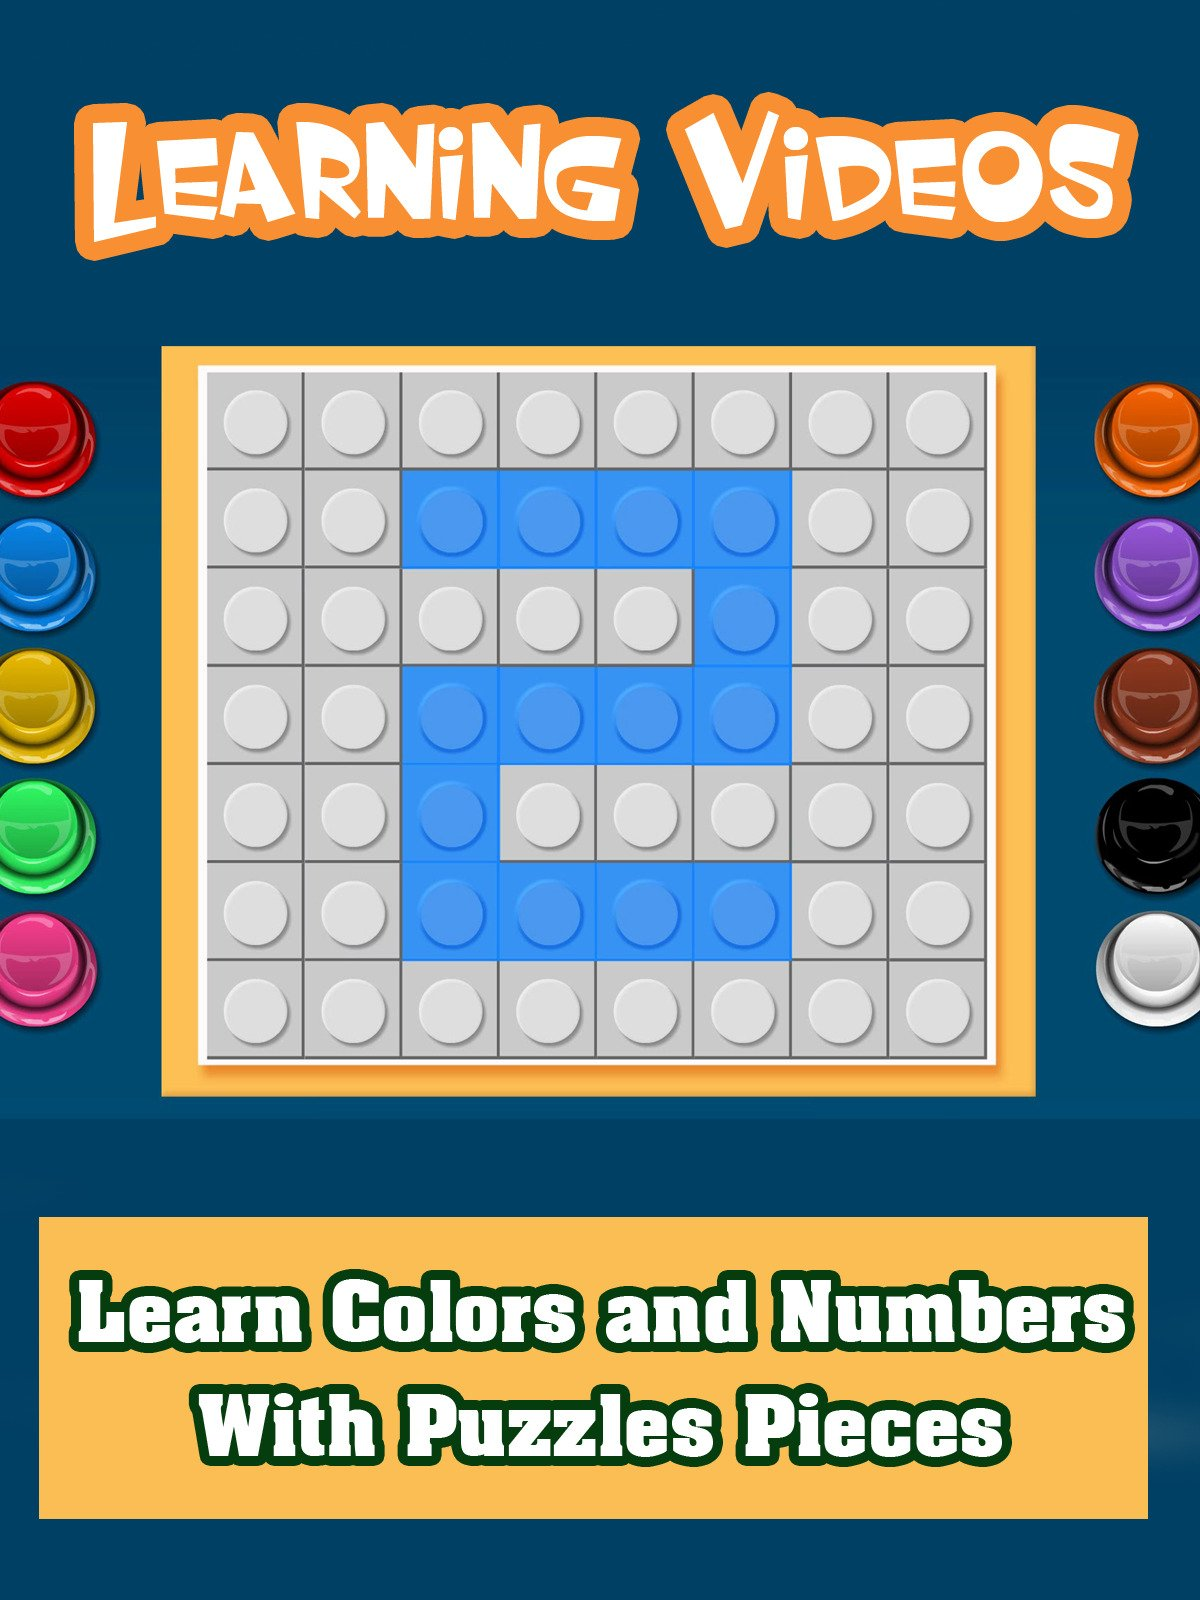 Learn Colors and Numbers With Puzzles Pieces